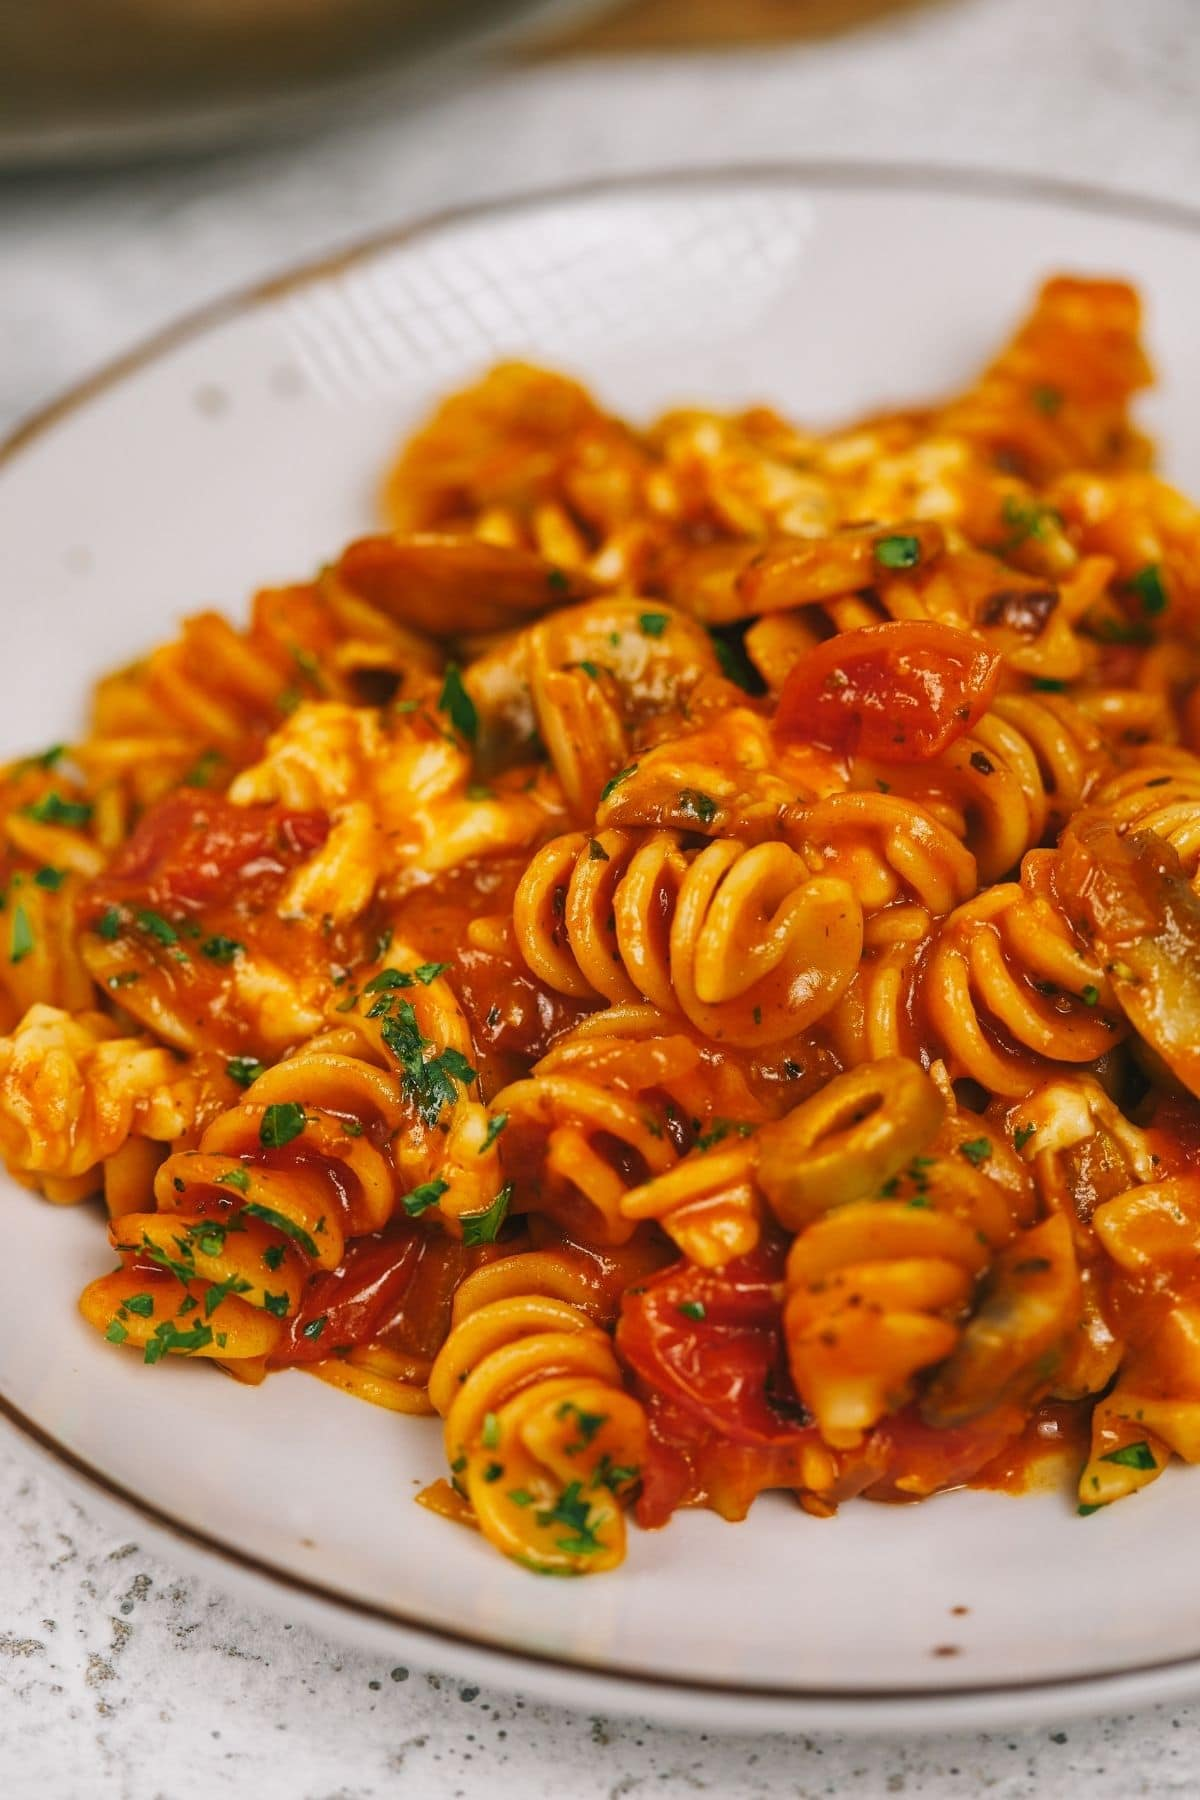 White and brown plate filled with pasta and vegetables in tomato sauce